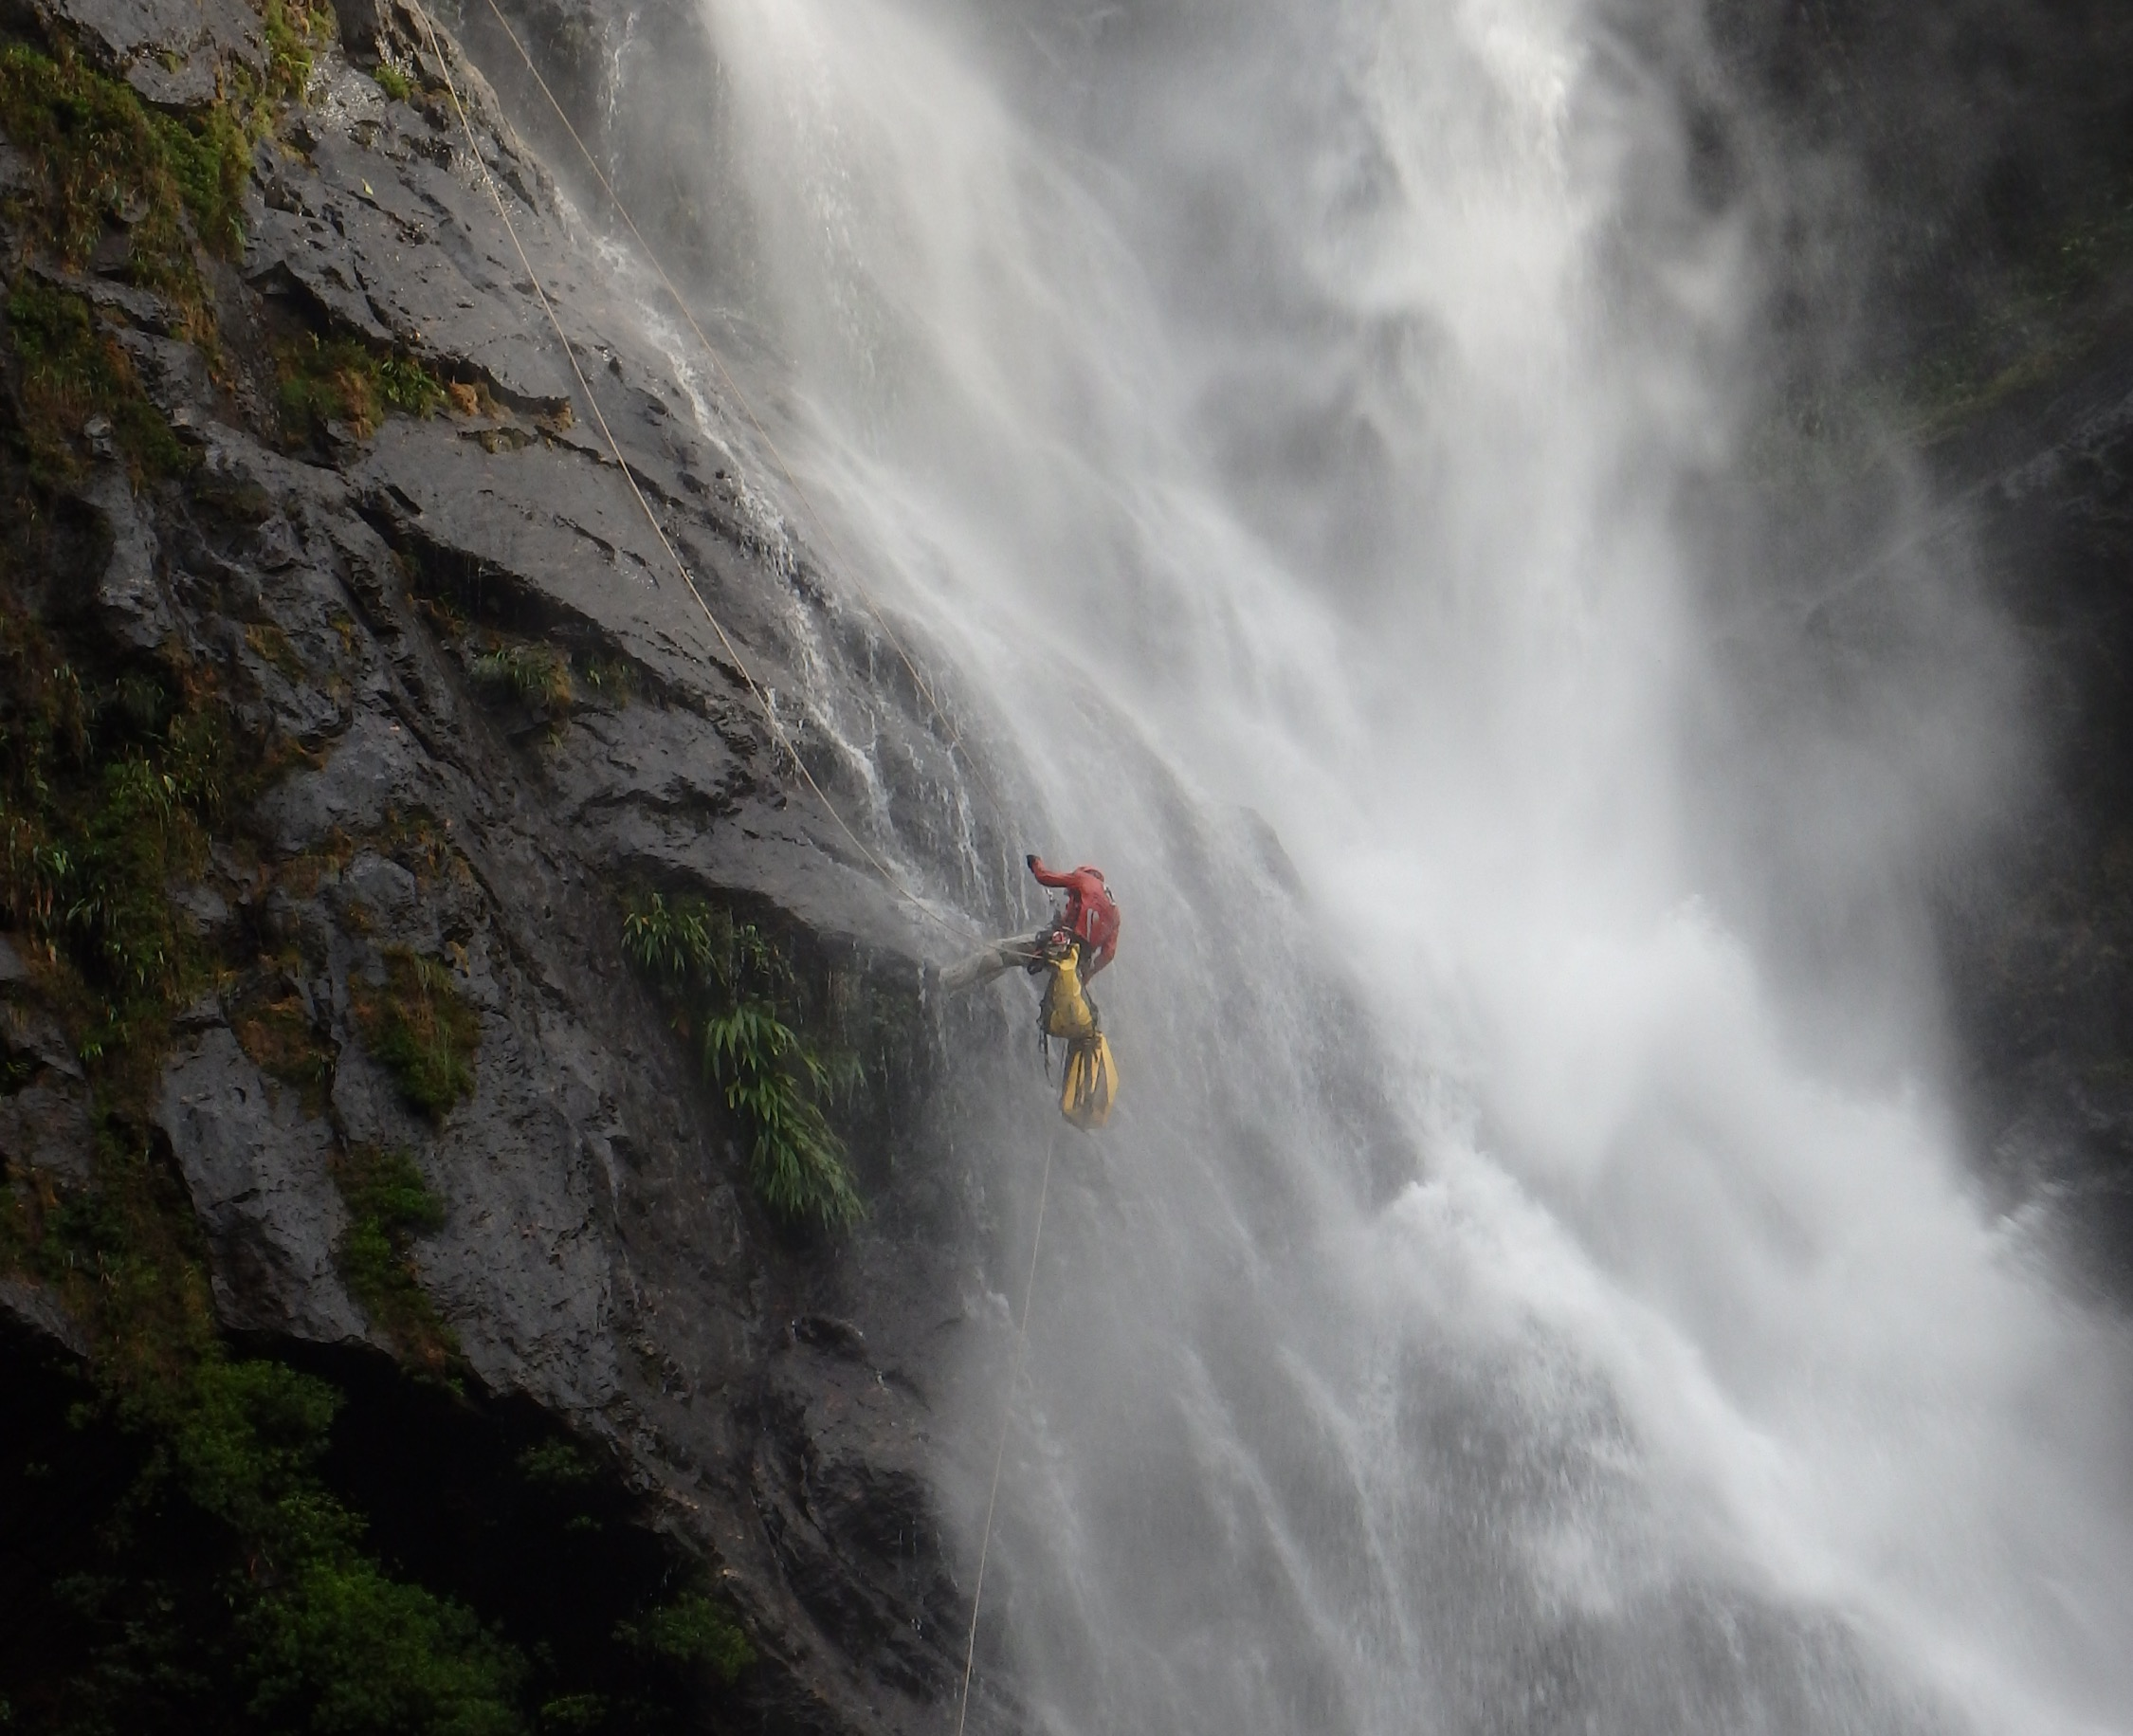 We are opening the new canyoning route of Esmeralda, with its beautiful 160m high waterfall (Colombia)